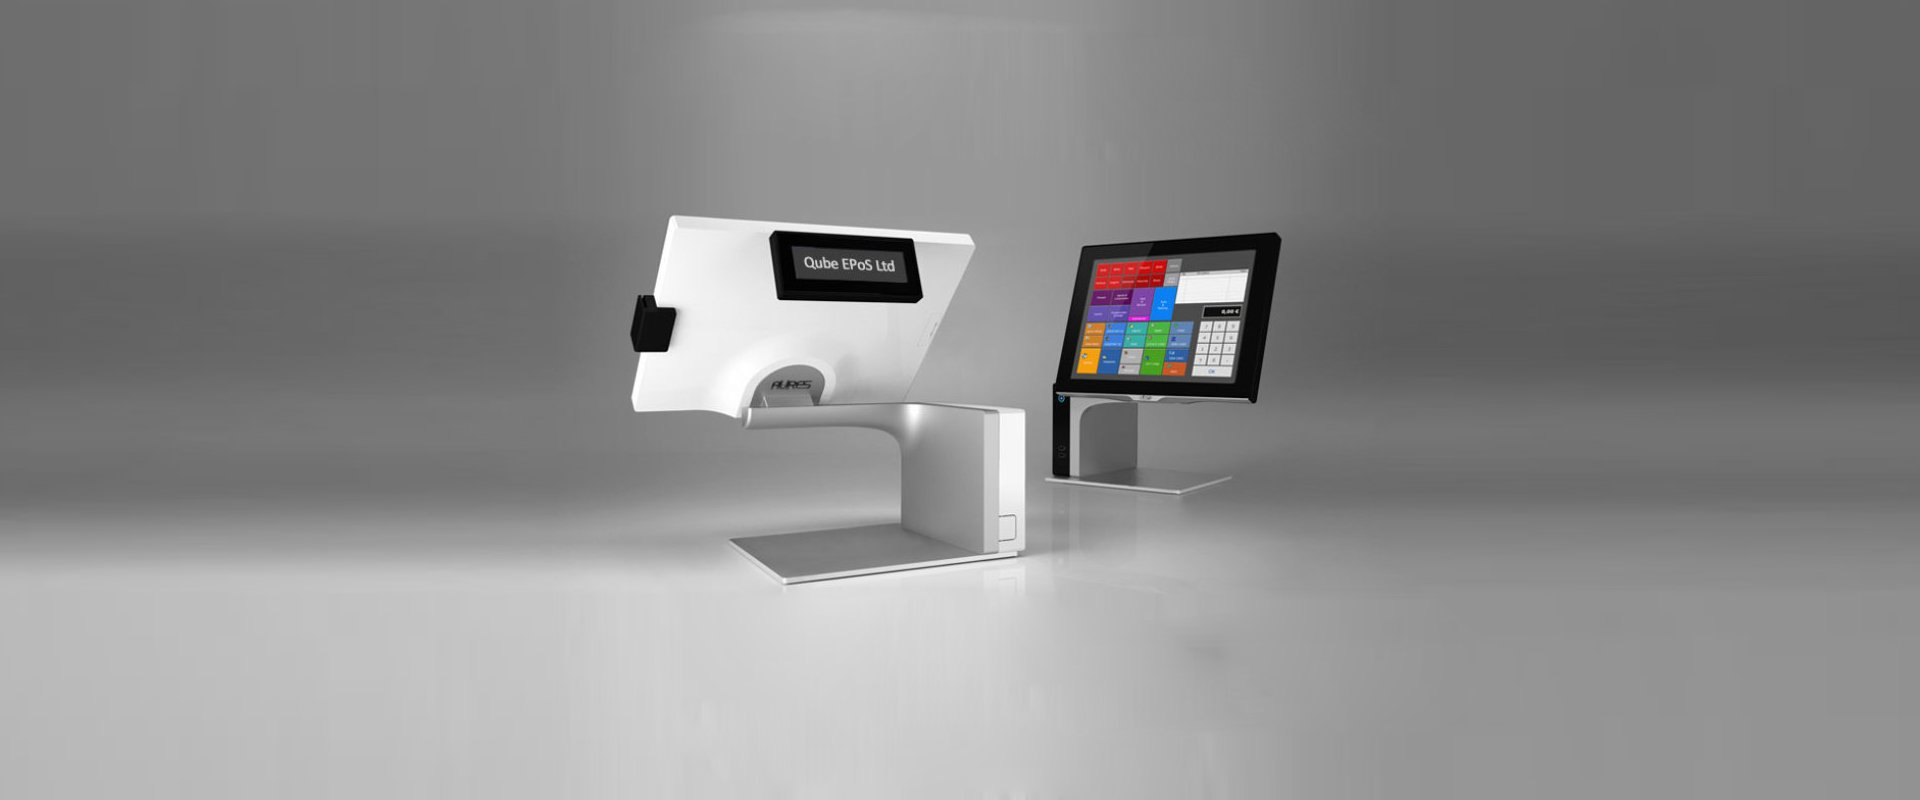 EPoS products